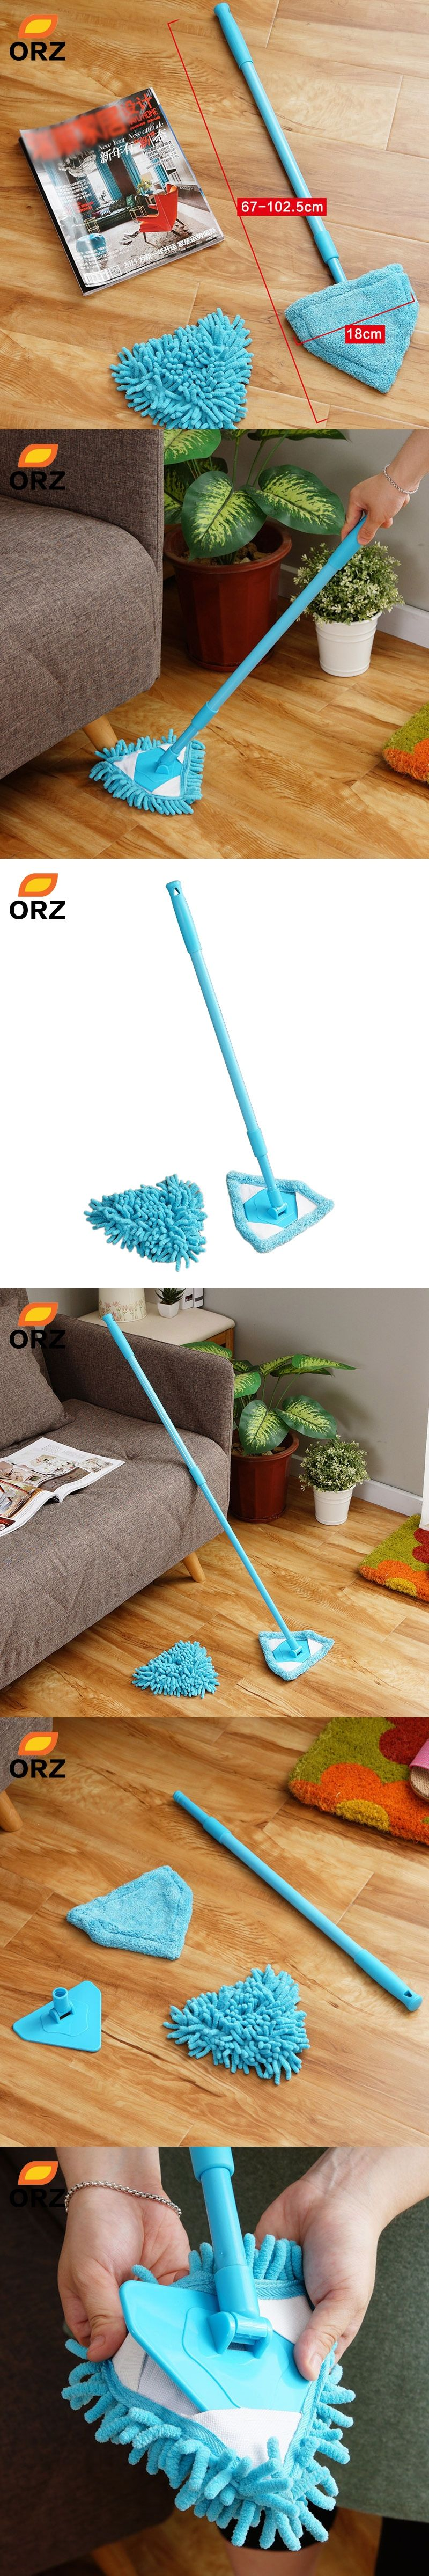 mops cleaning the steam mop household my experience haan using floor